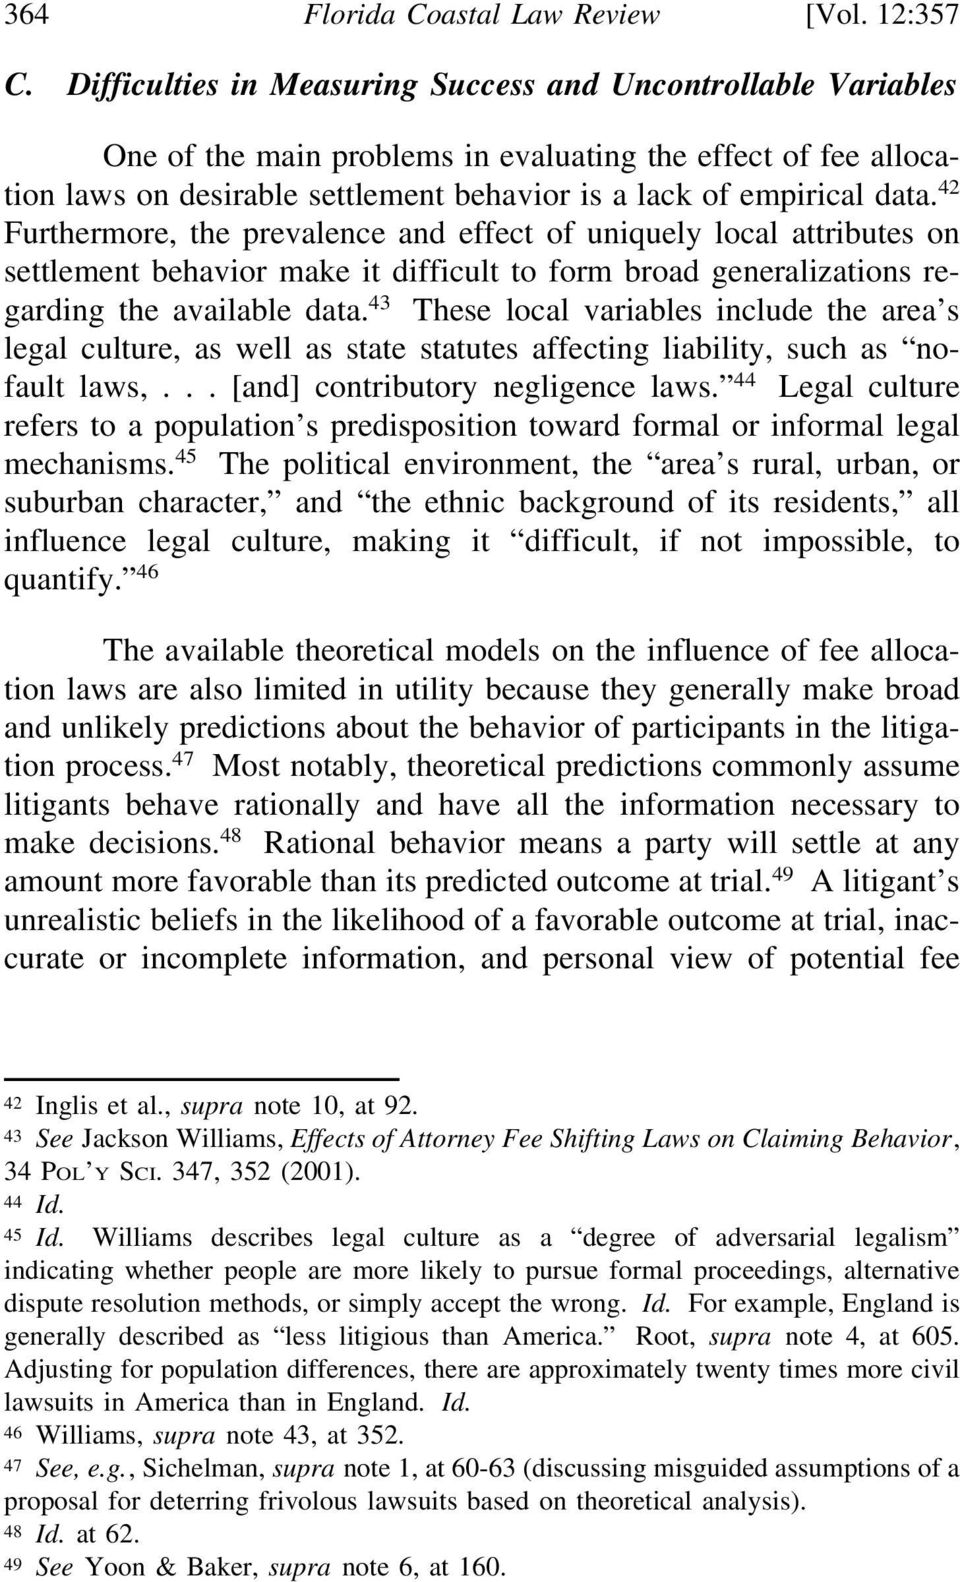 42 Furthermore, the prevalence and effect of uniquely local attributes on settlement behavior make it difficult to form broad generalizations regarding the available data.